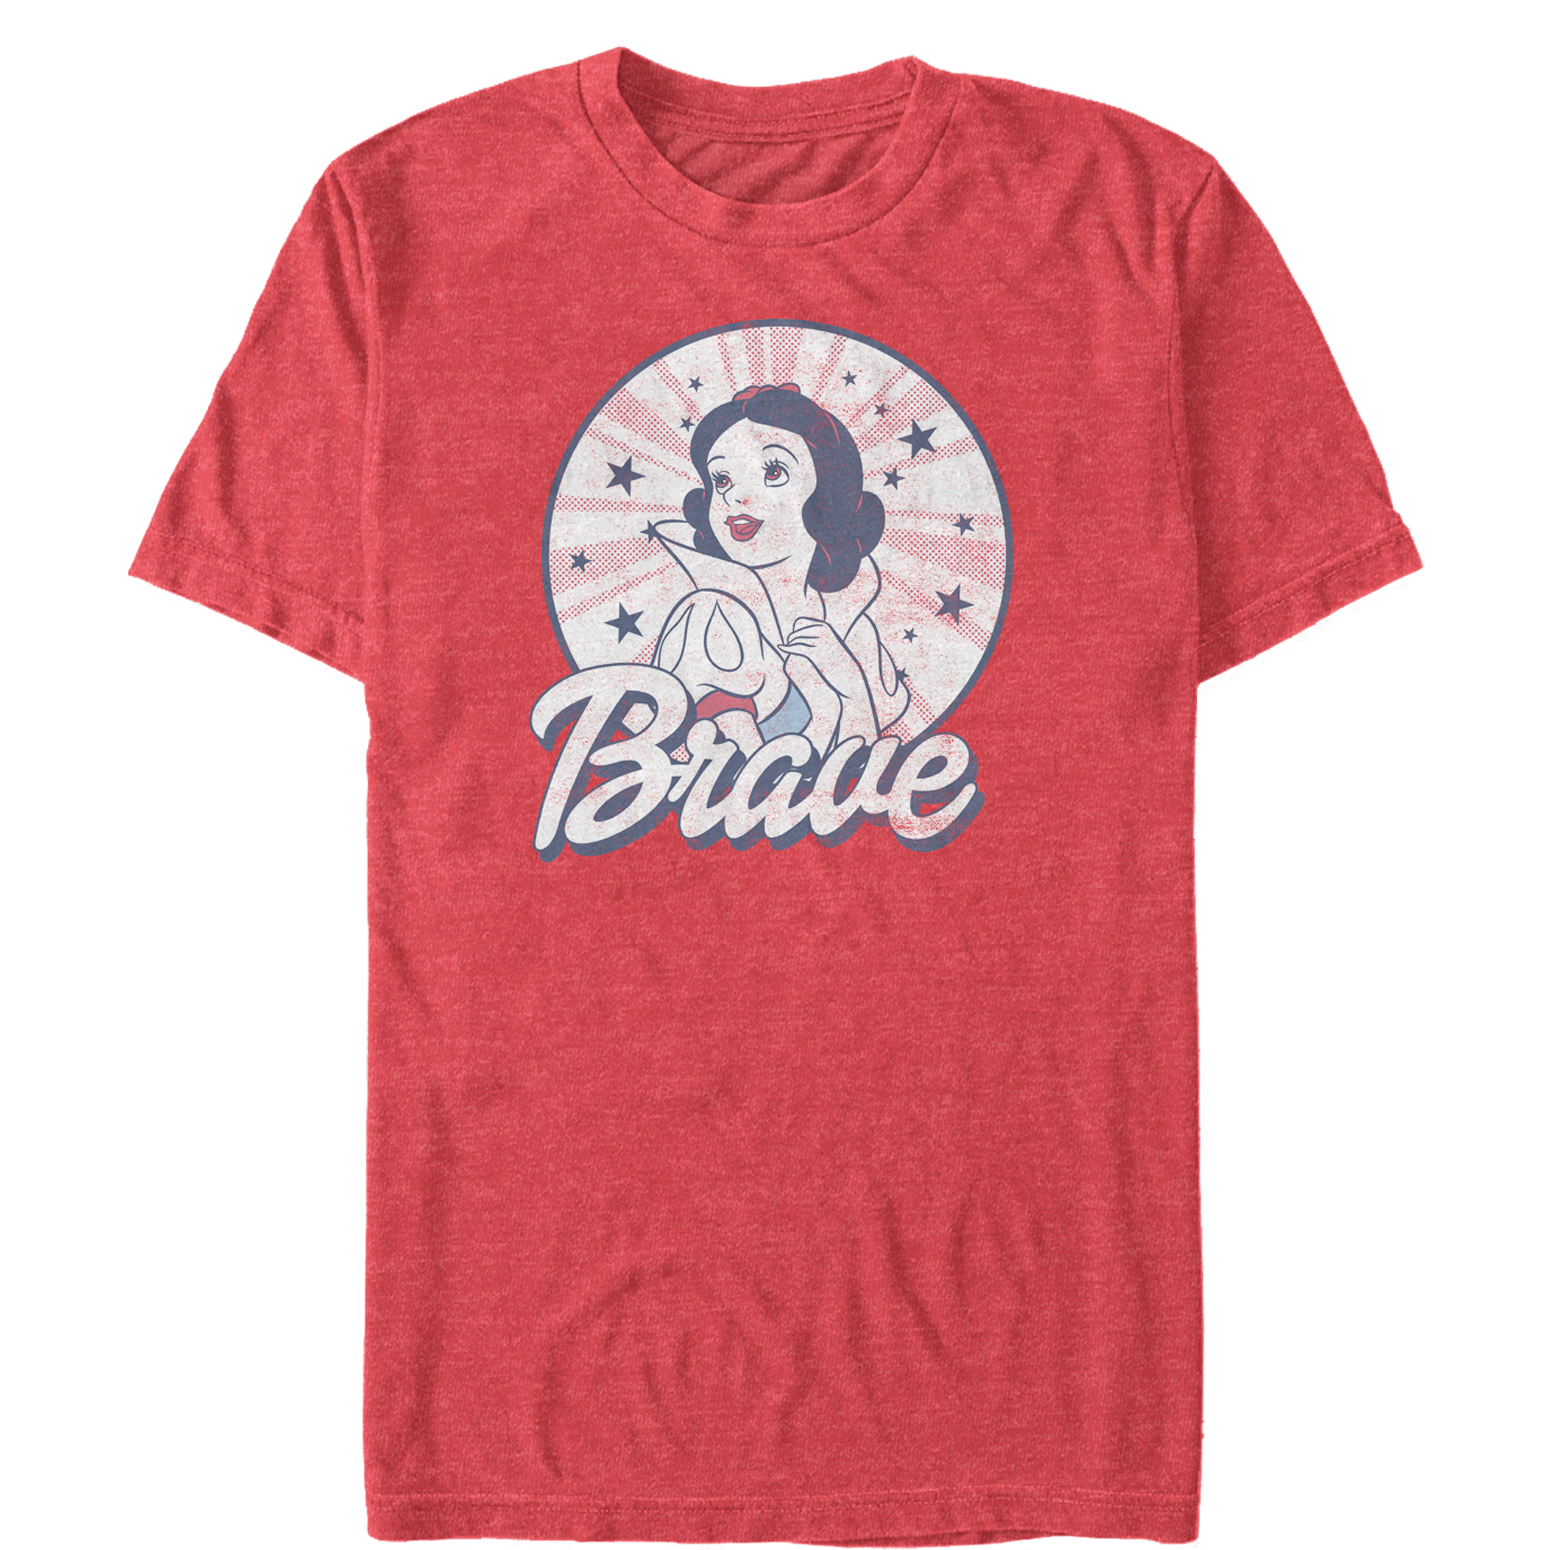 Snow White and the Seven Dwarves Men's Fourth of July Brave T-Shirt